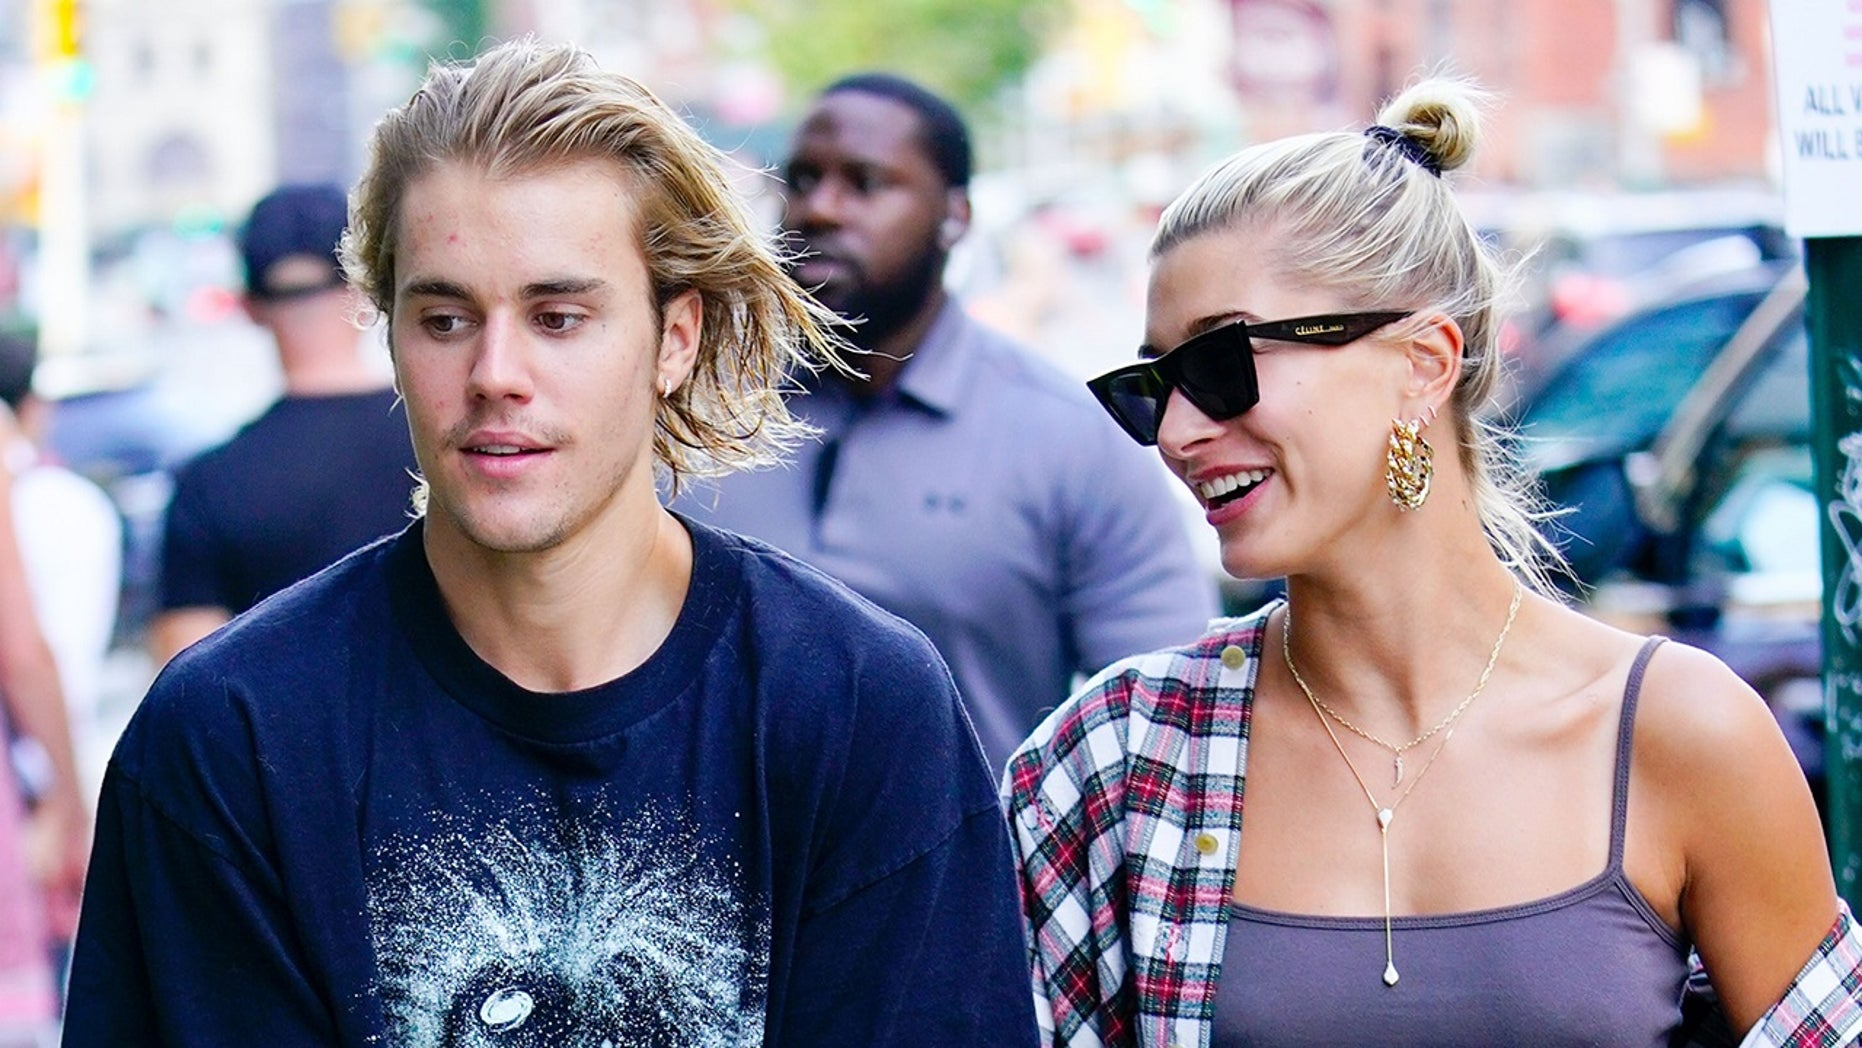 Justin Bieber and Hailey Baldwin uncover some PDA on Instagram in a new post on a singer's account.